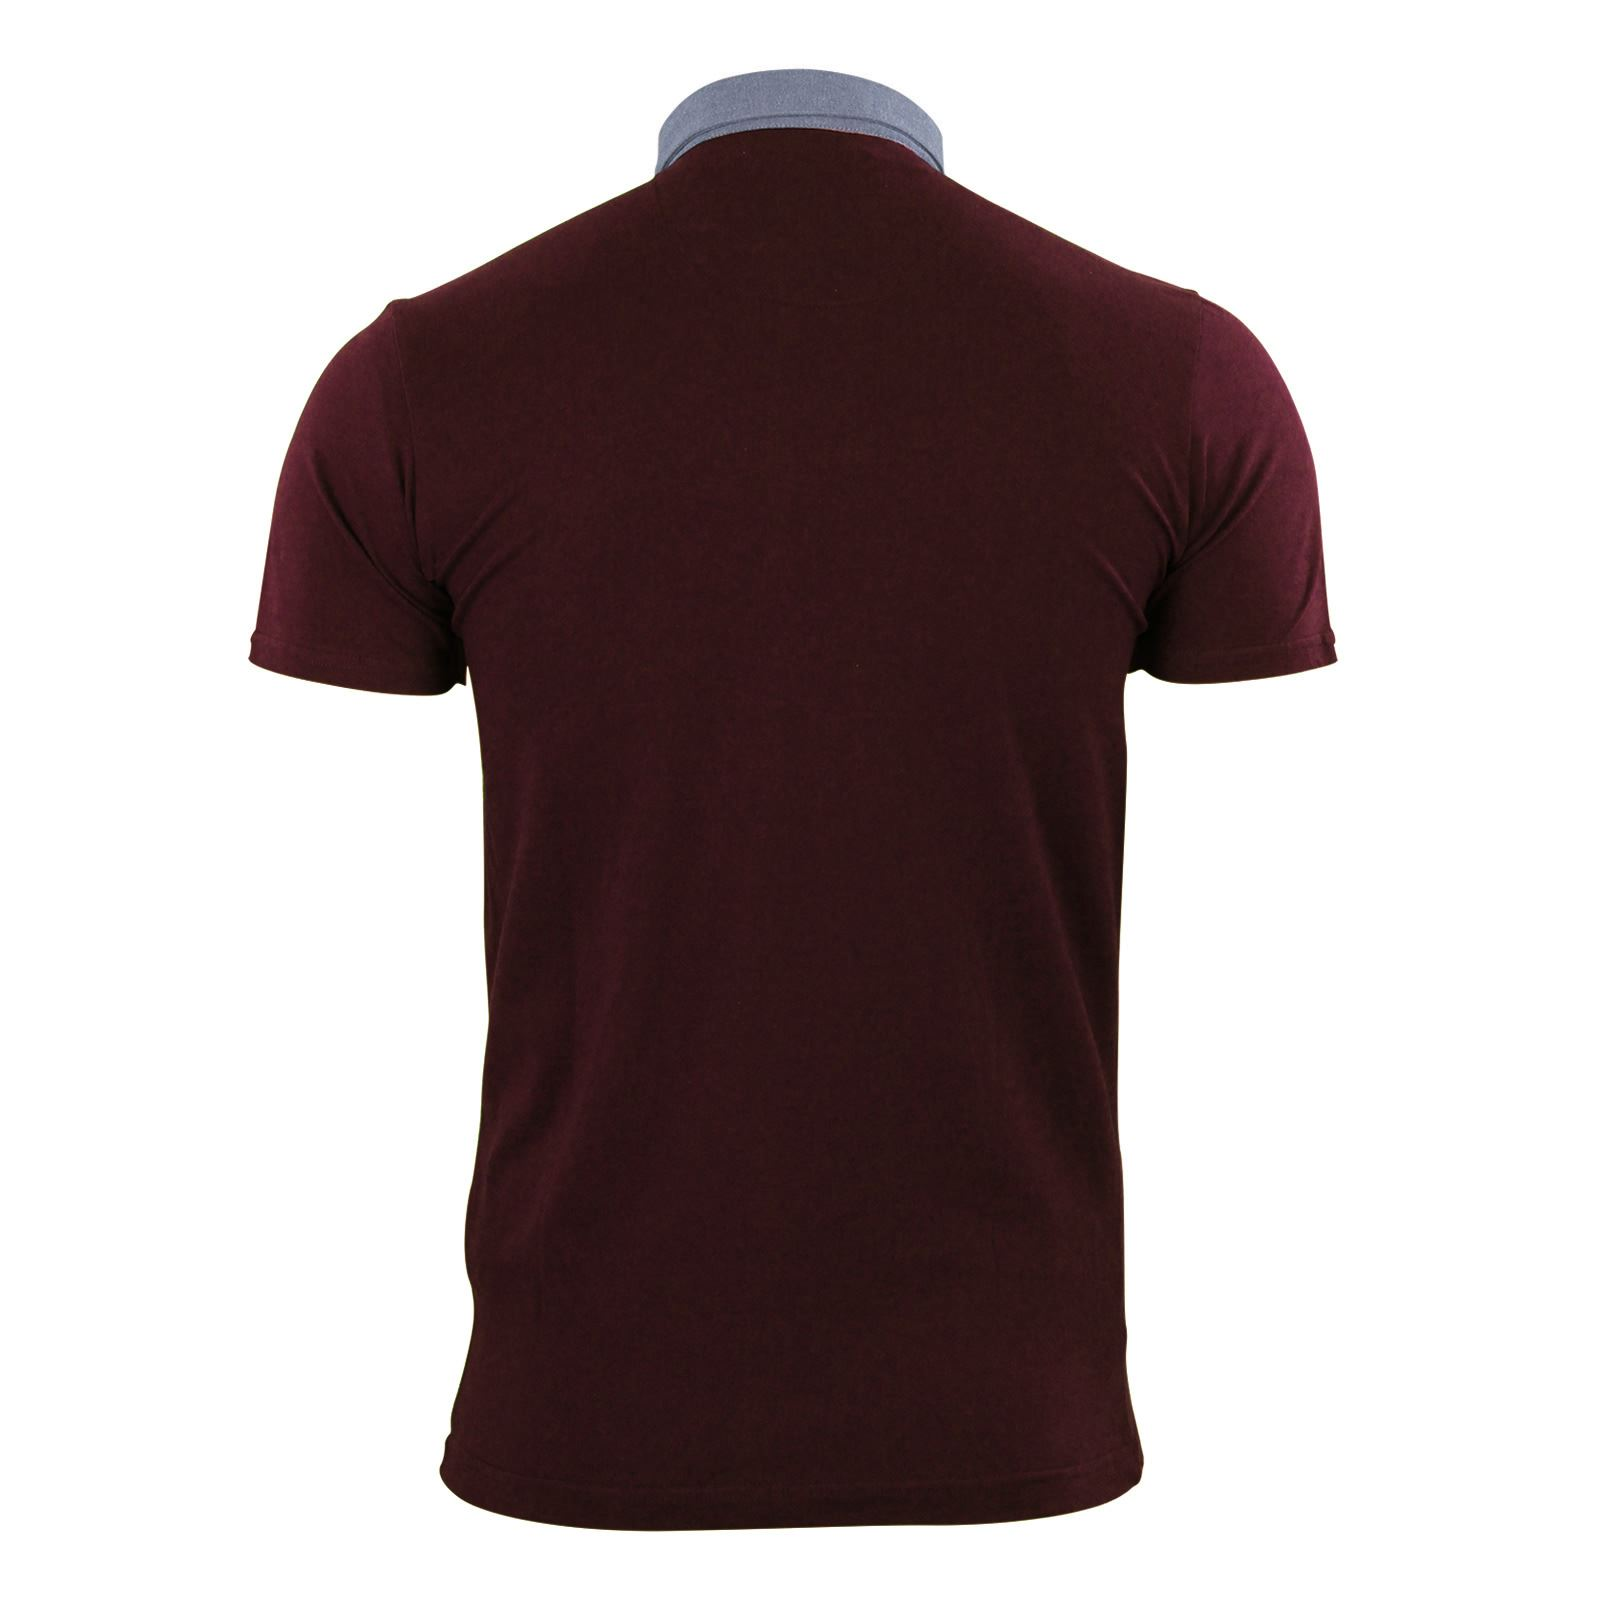 Brave-Soul-Glover-Mens-Polo-T-Shirt-Cotton-Collared-Short-Sleeve-Casual-Top thumbnail 3